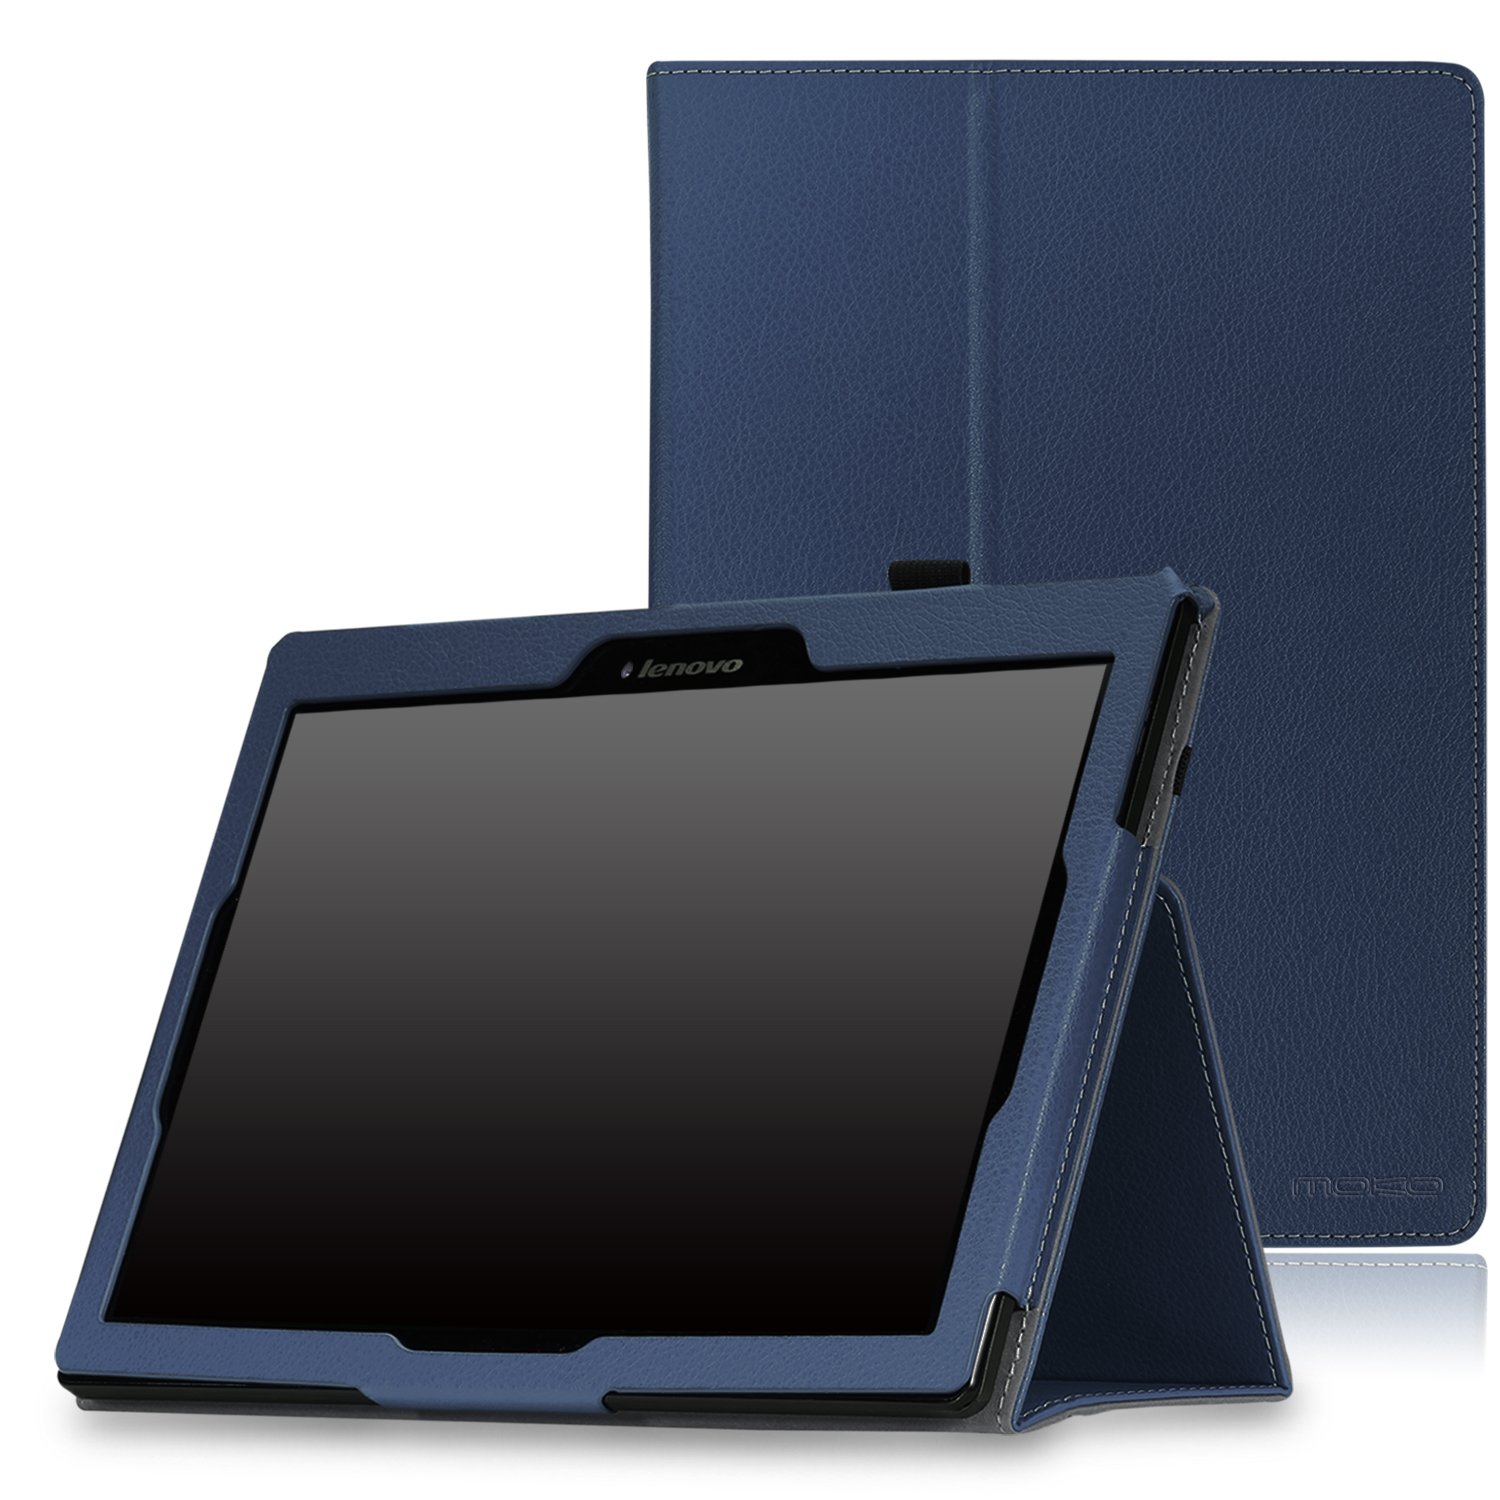 accessories lenovo tab x103f tab 10 tab 2 a10 case moko 3 fold stand smart cover case. Black Bedroom Furniture Sets. Home Design Ideas